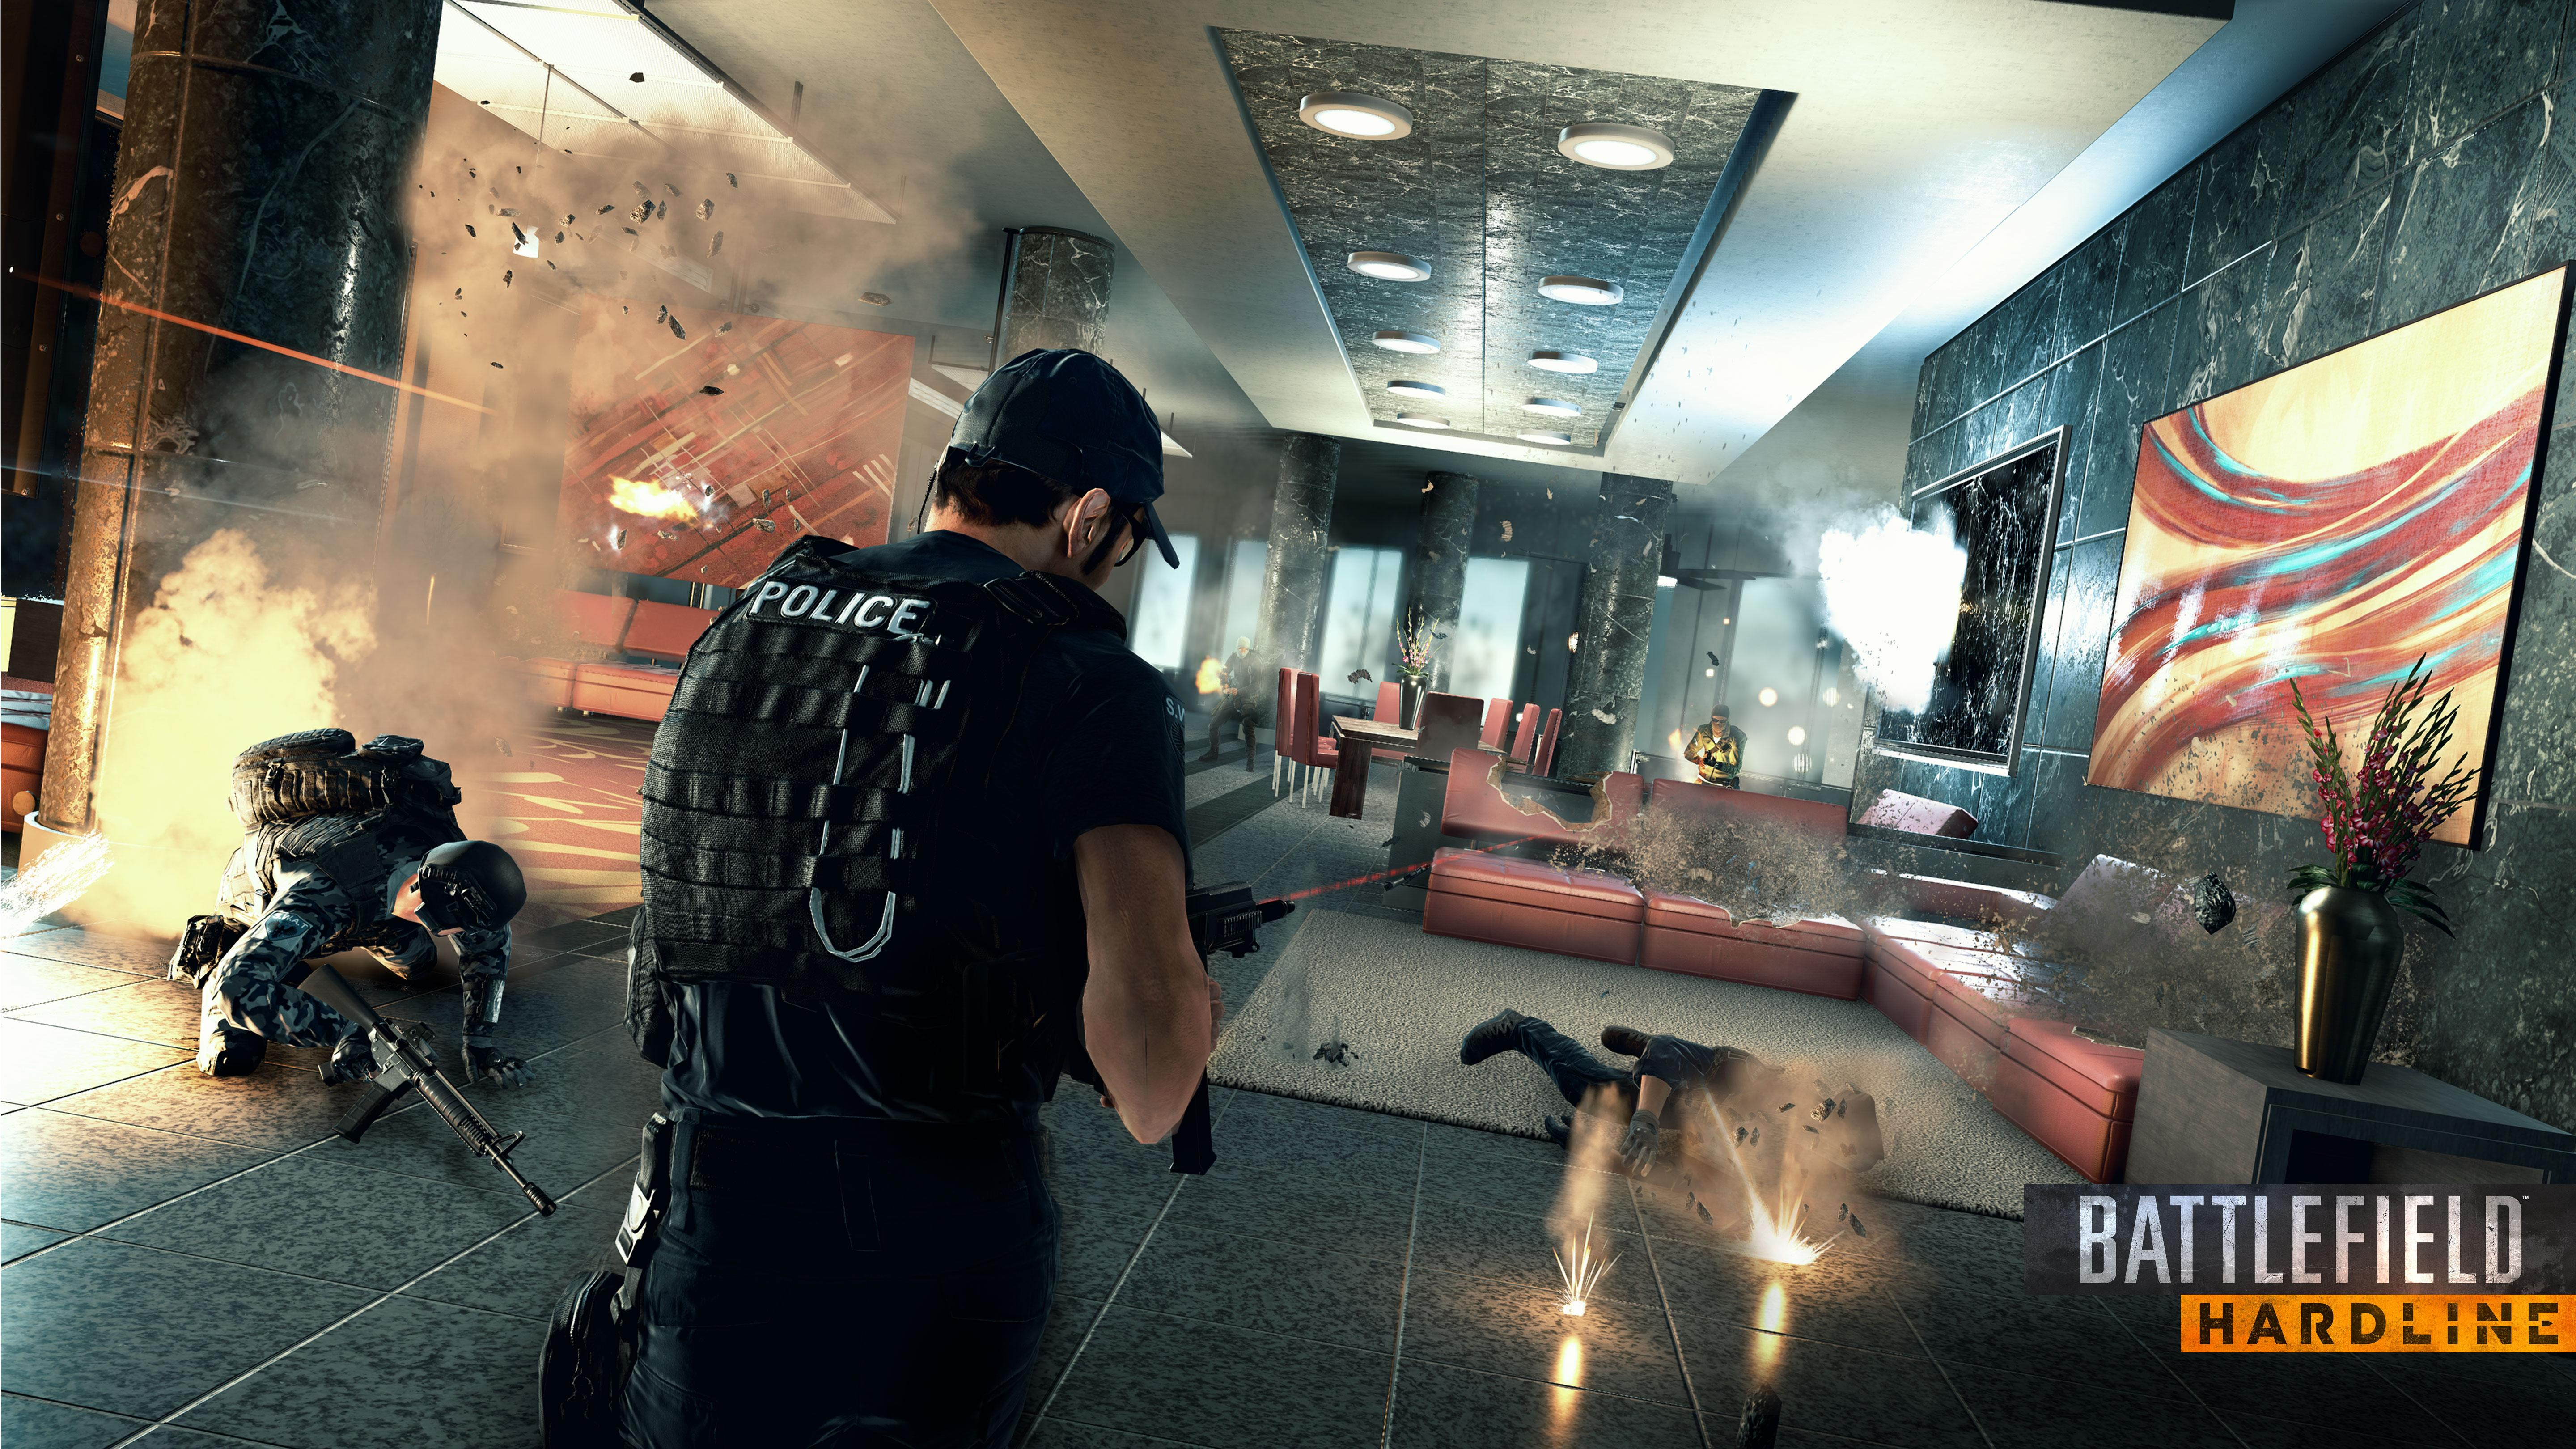 Battlefield Hardline Xbox One Now Available to Pre-Load